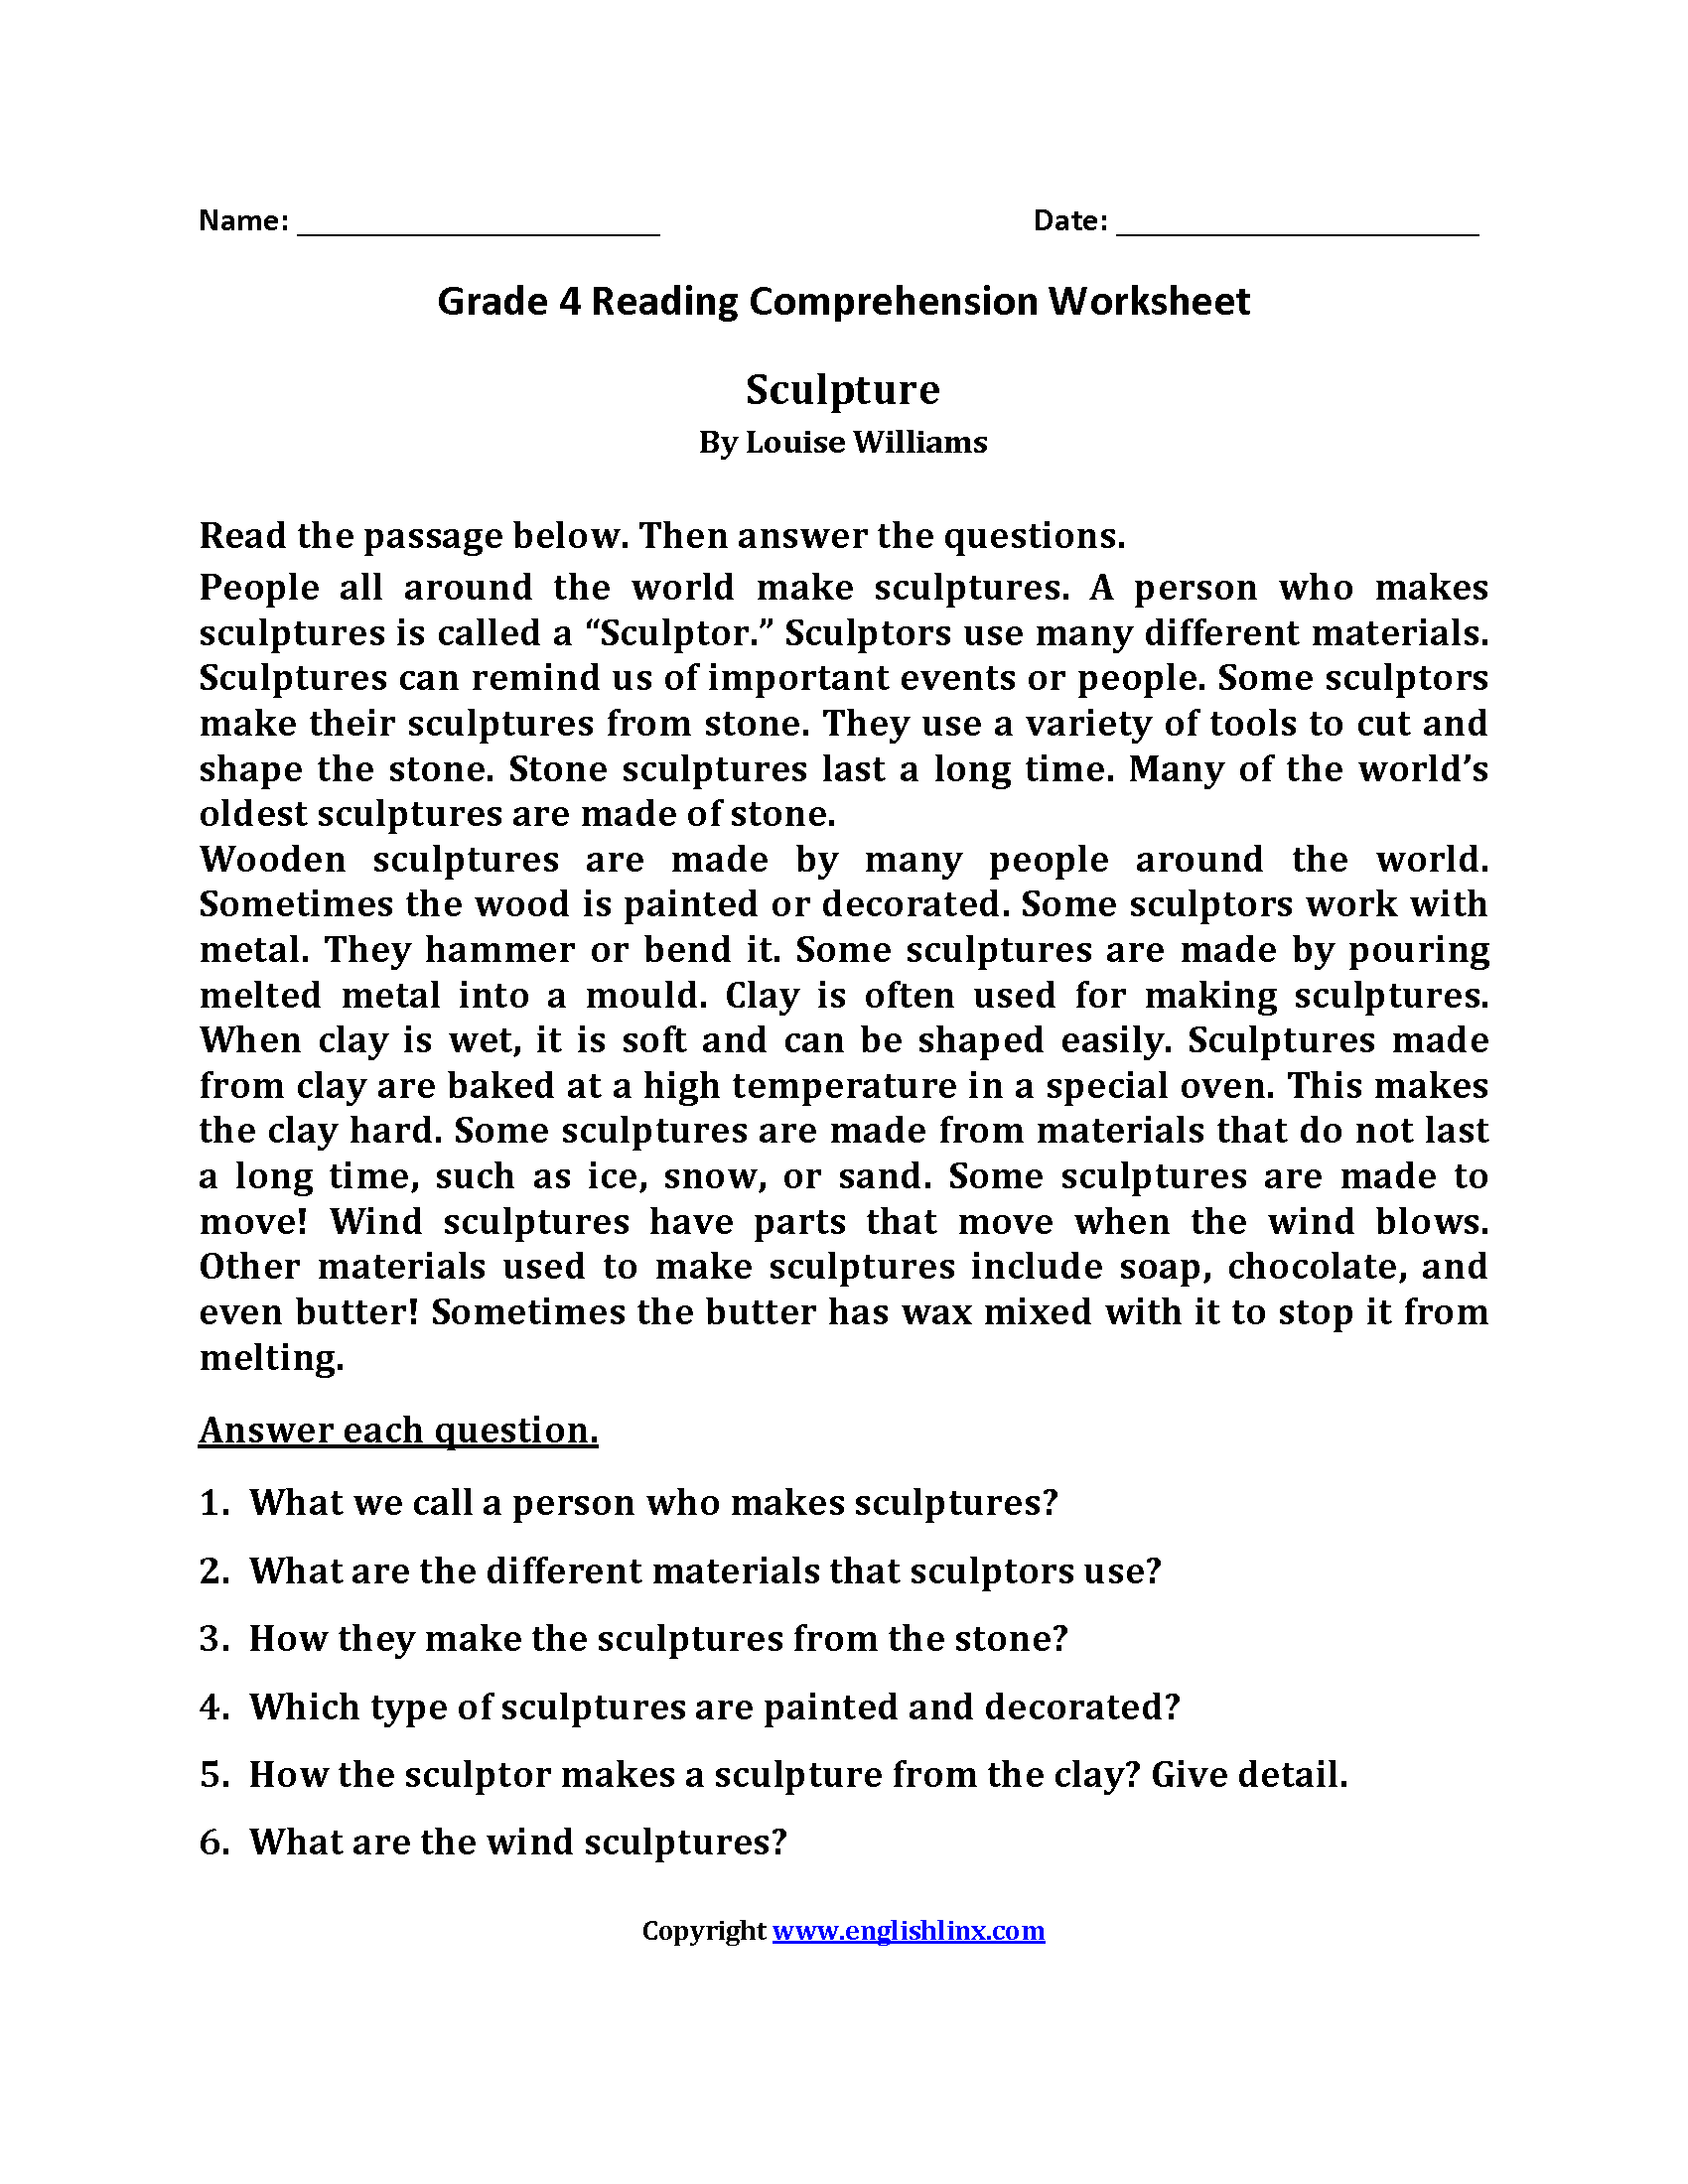 Sculpture Fourth Grade Reading Worksheets